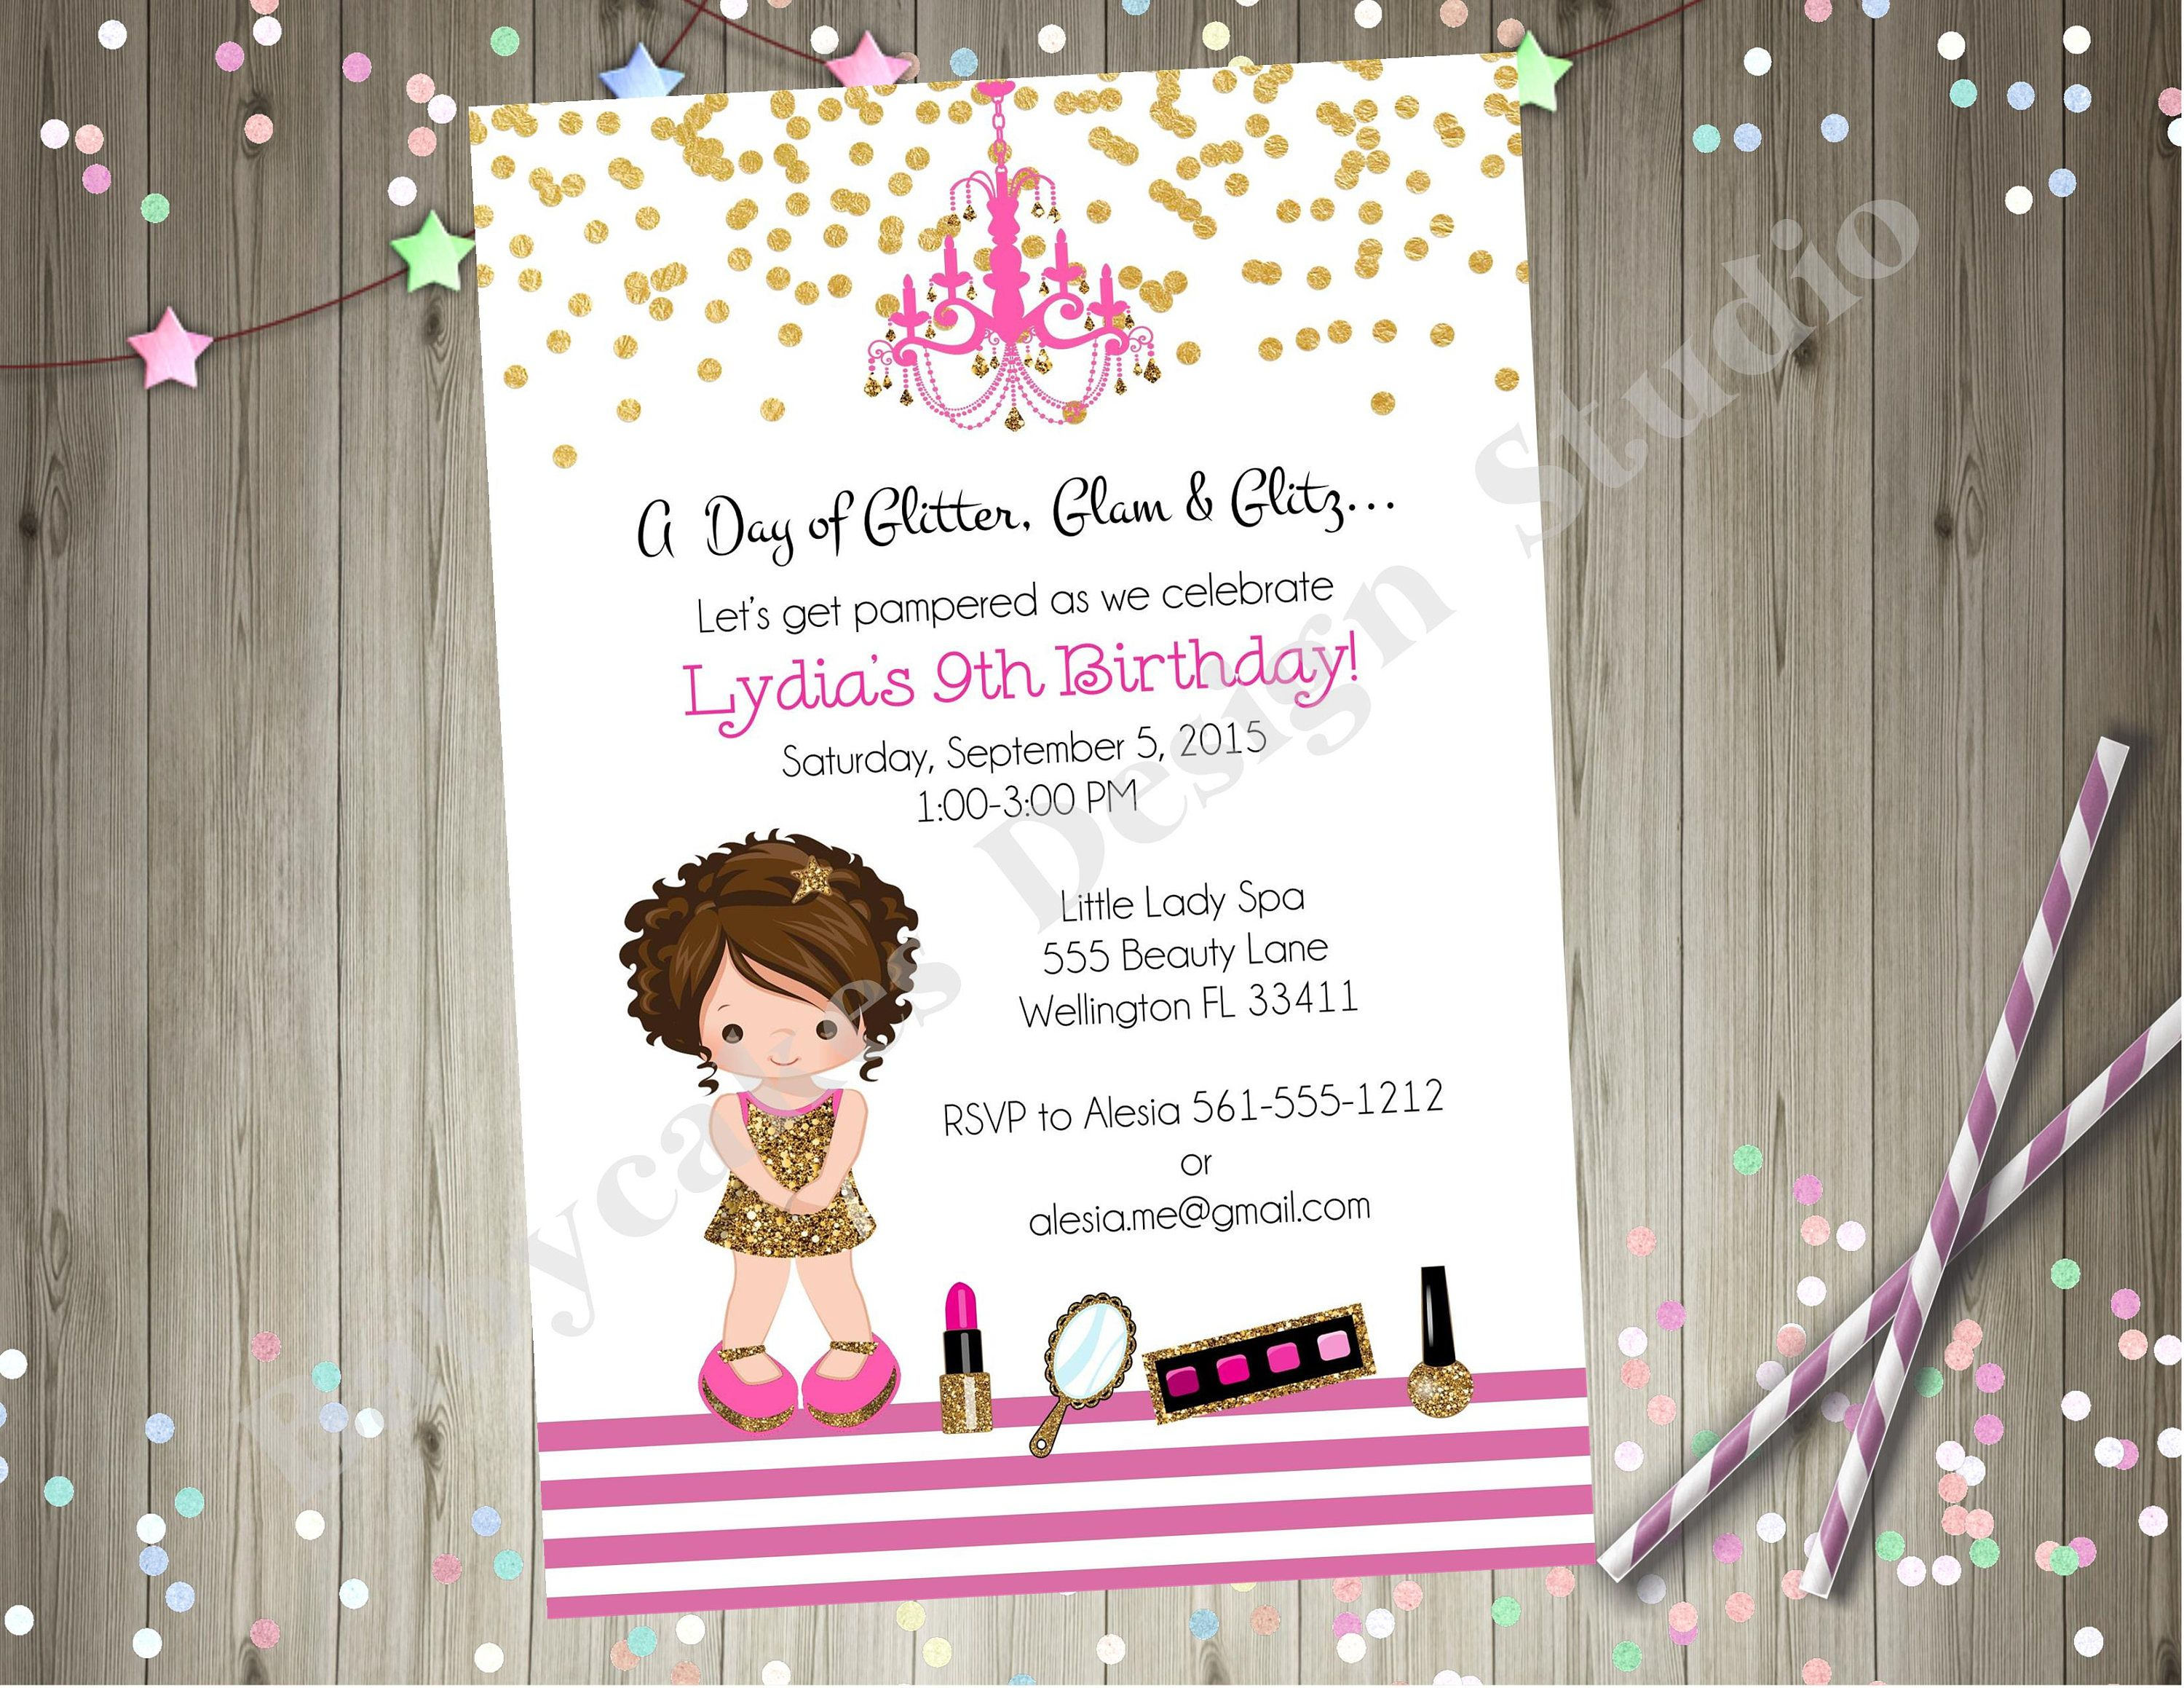 Dress Up Party Invitation Glam Glamour Party Spa Party Pamper Party ...